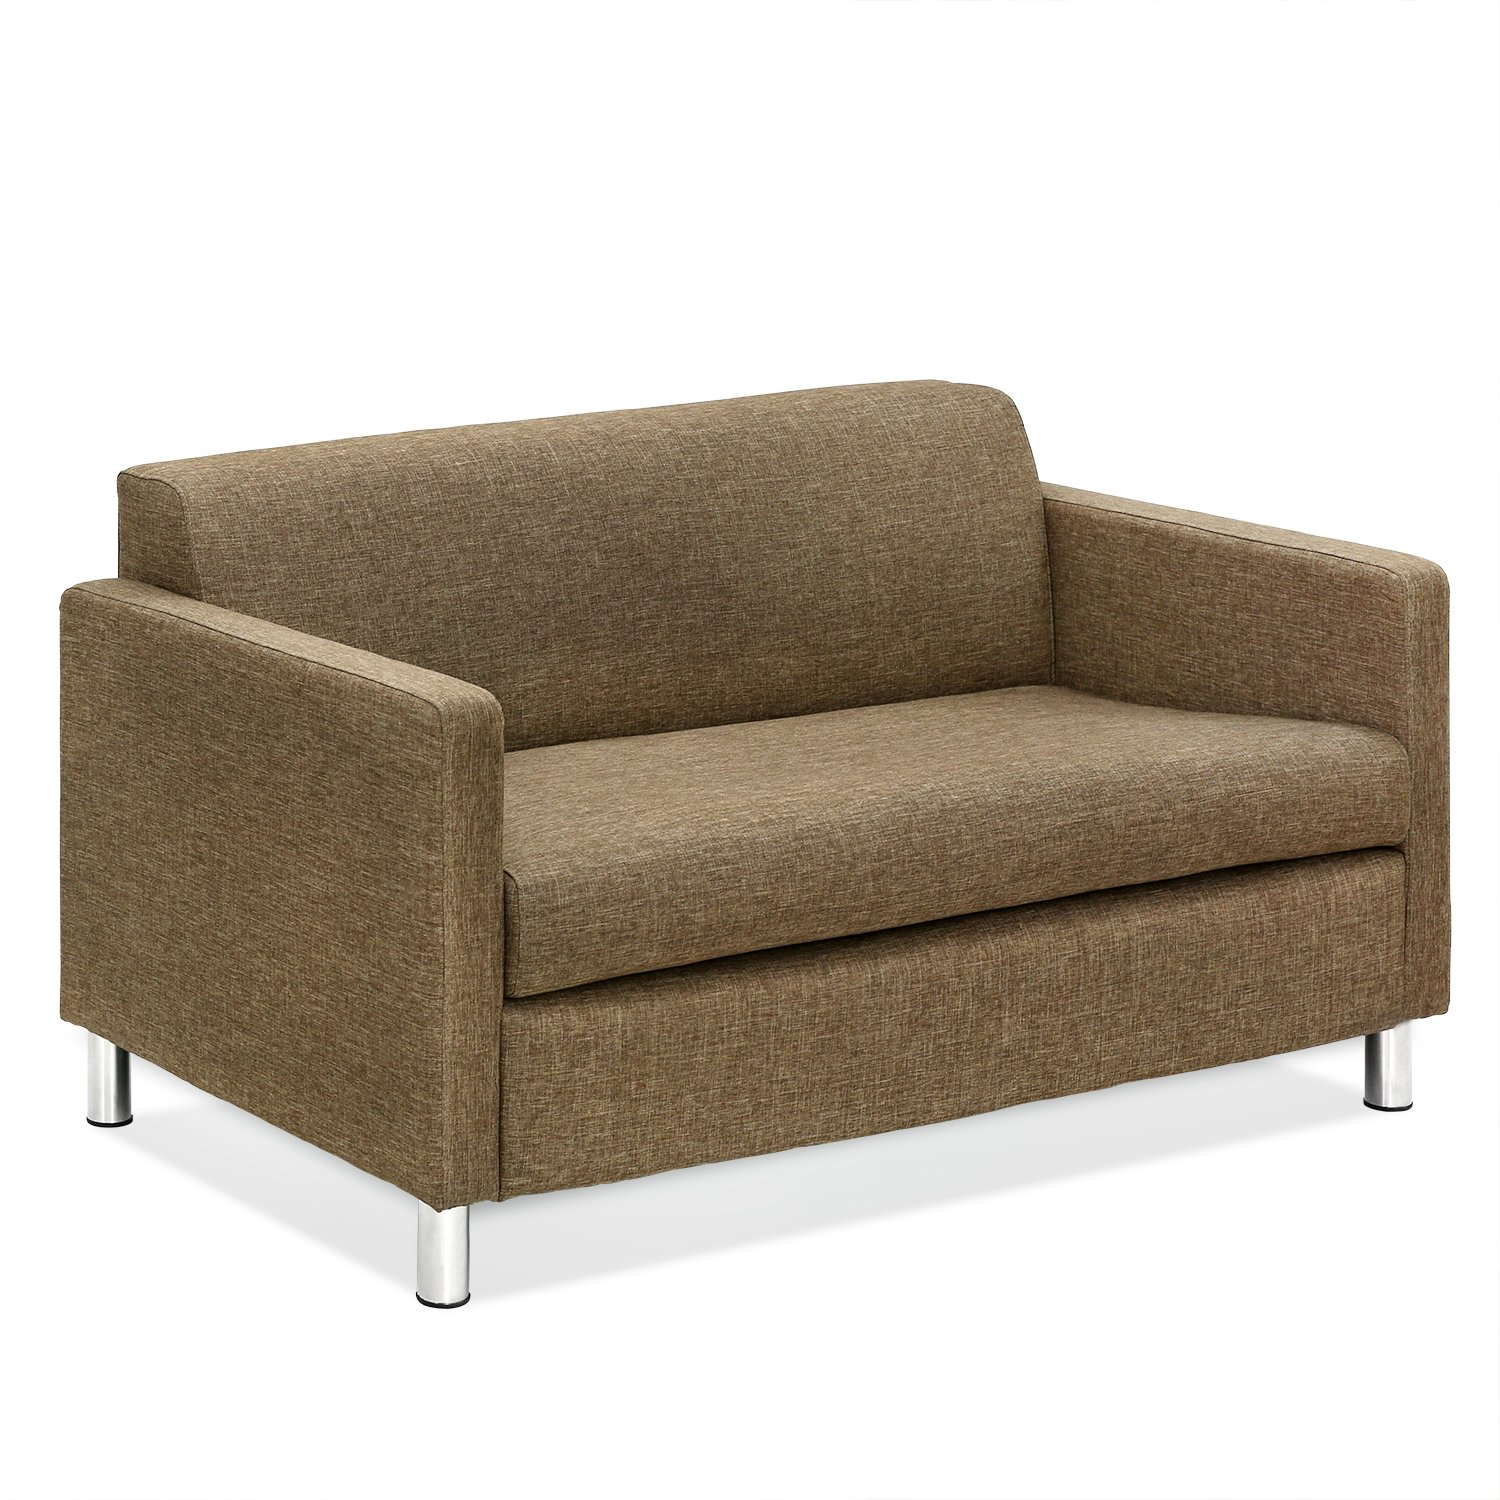 Amazon.com: Furinno Simply Home Loveseat Sofa, Brown ...